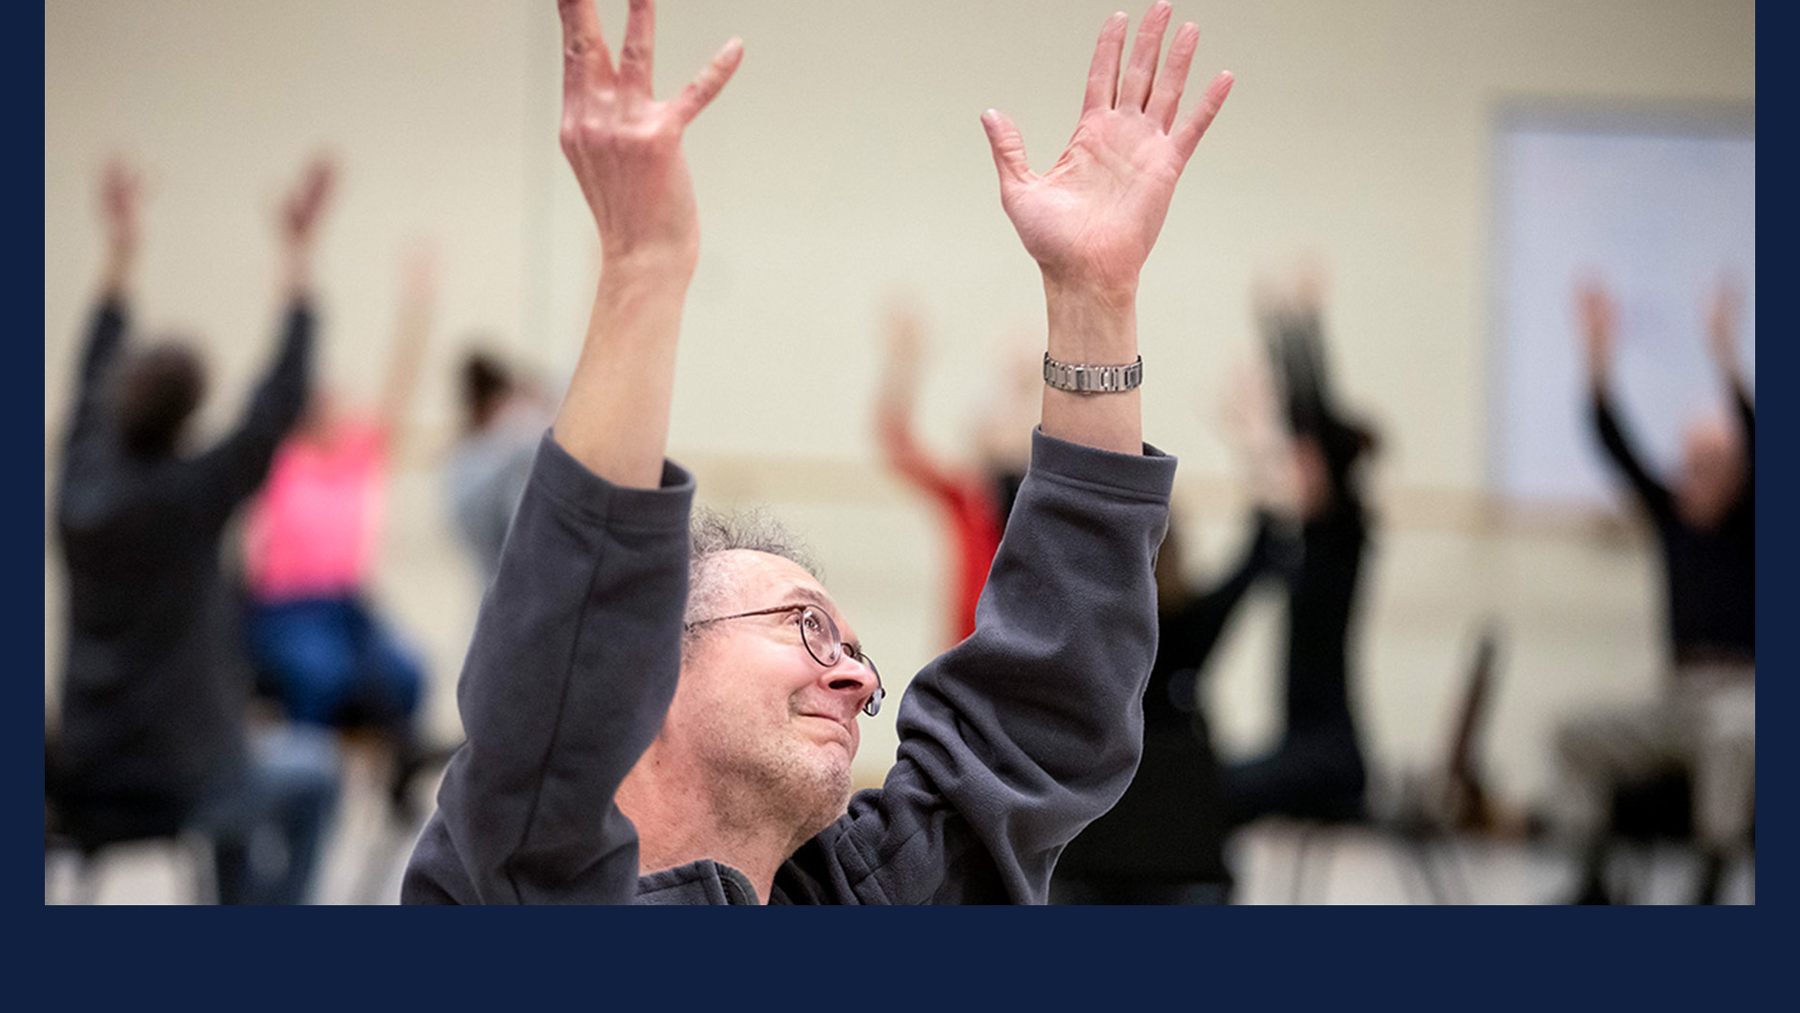 Gary Stitt, 61, stretches his arms to the sky as people gather for a Dance for People with Parkinson's class at Krannert Center for the Performing Arts. All photos by Fred Zwicky